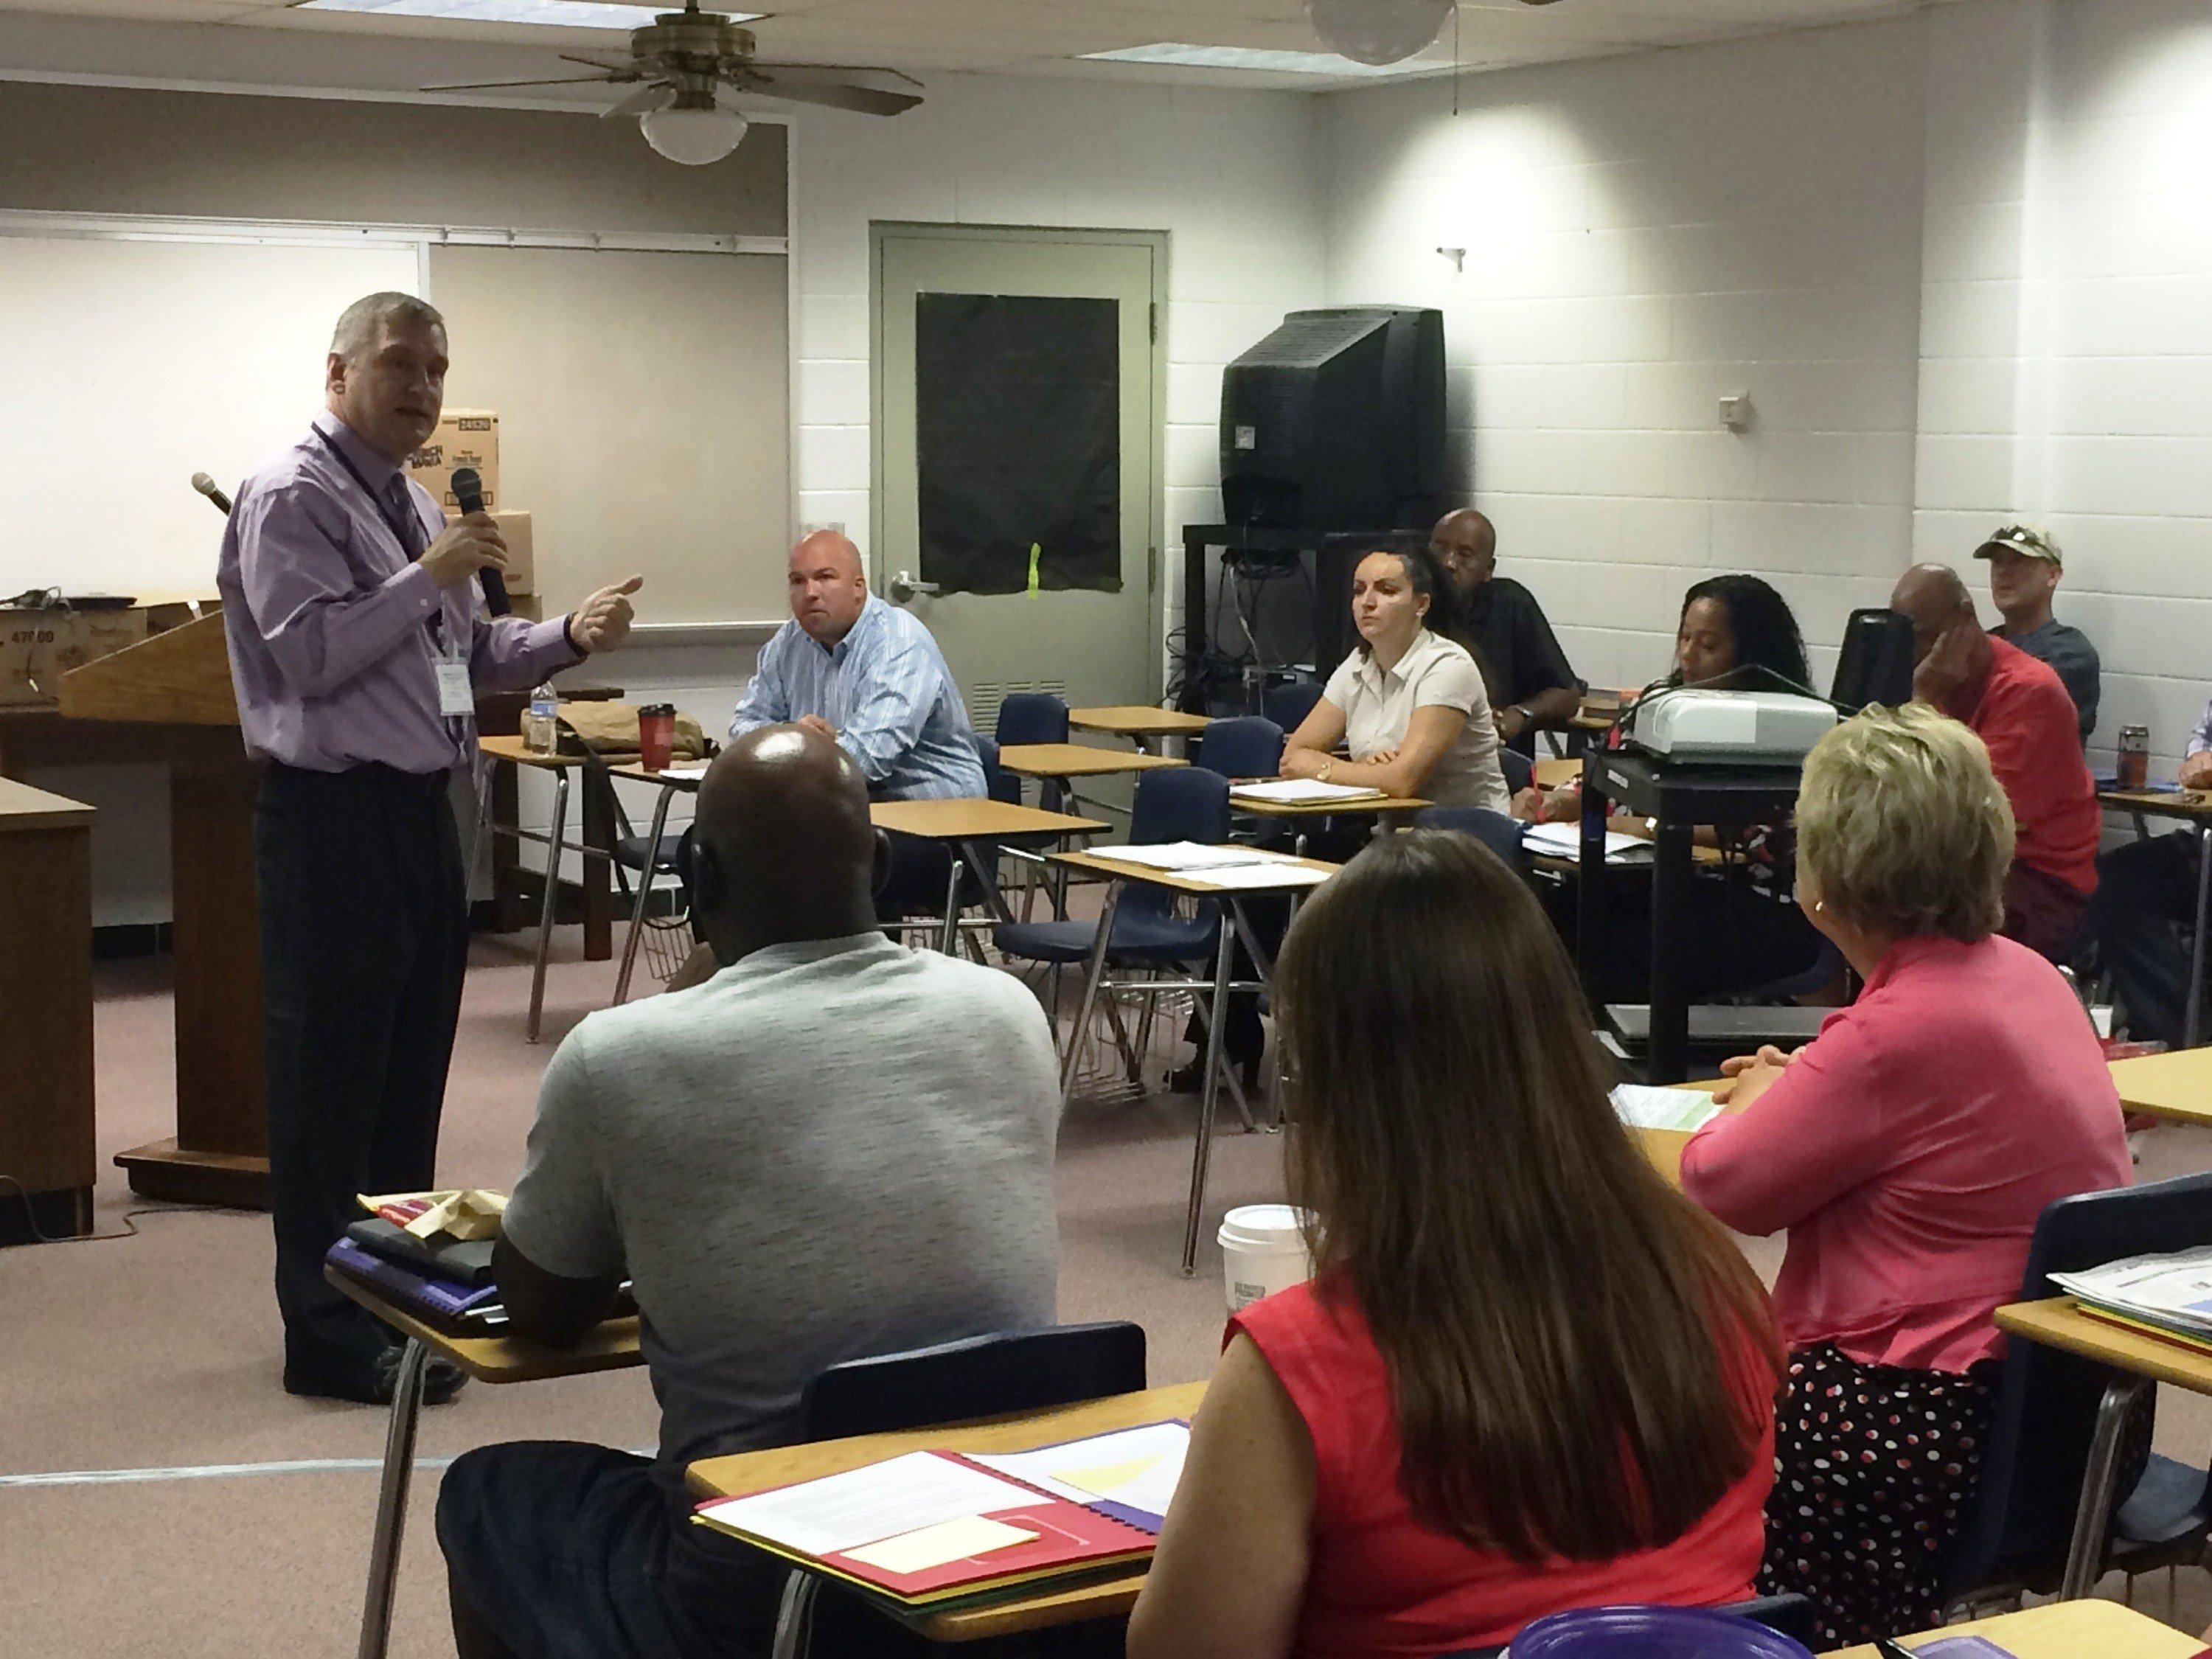 JCPS chief academic officer Dewey Hensley addresses teachers at the new Minor Daniels Academy earlier this month (Photo by Toni Konz, WDRB News)